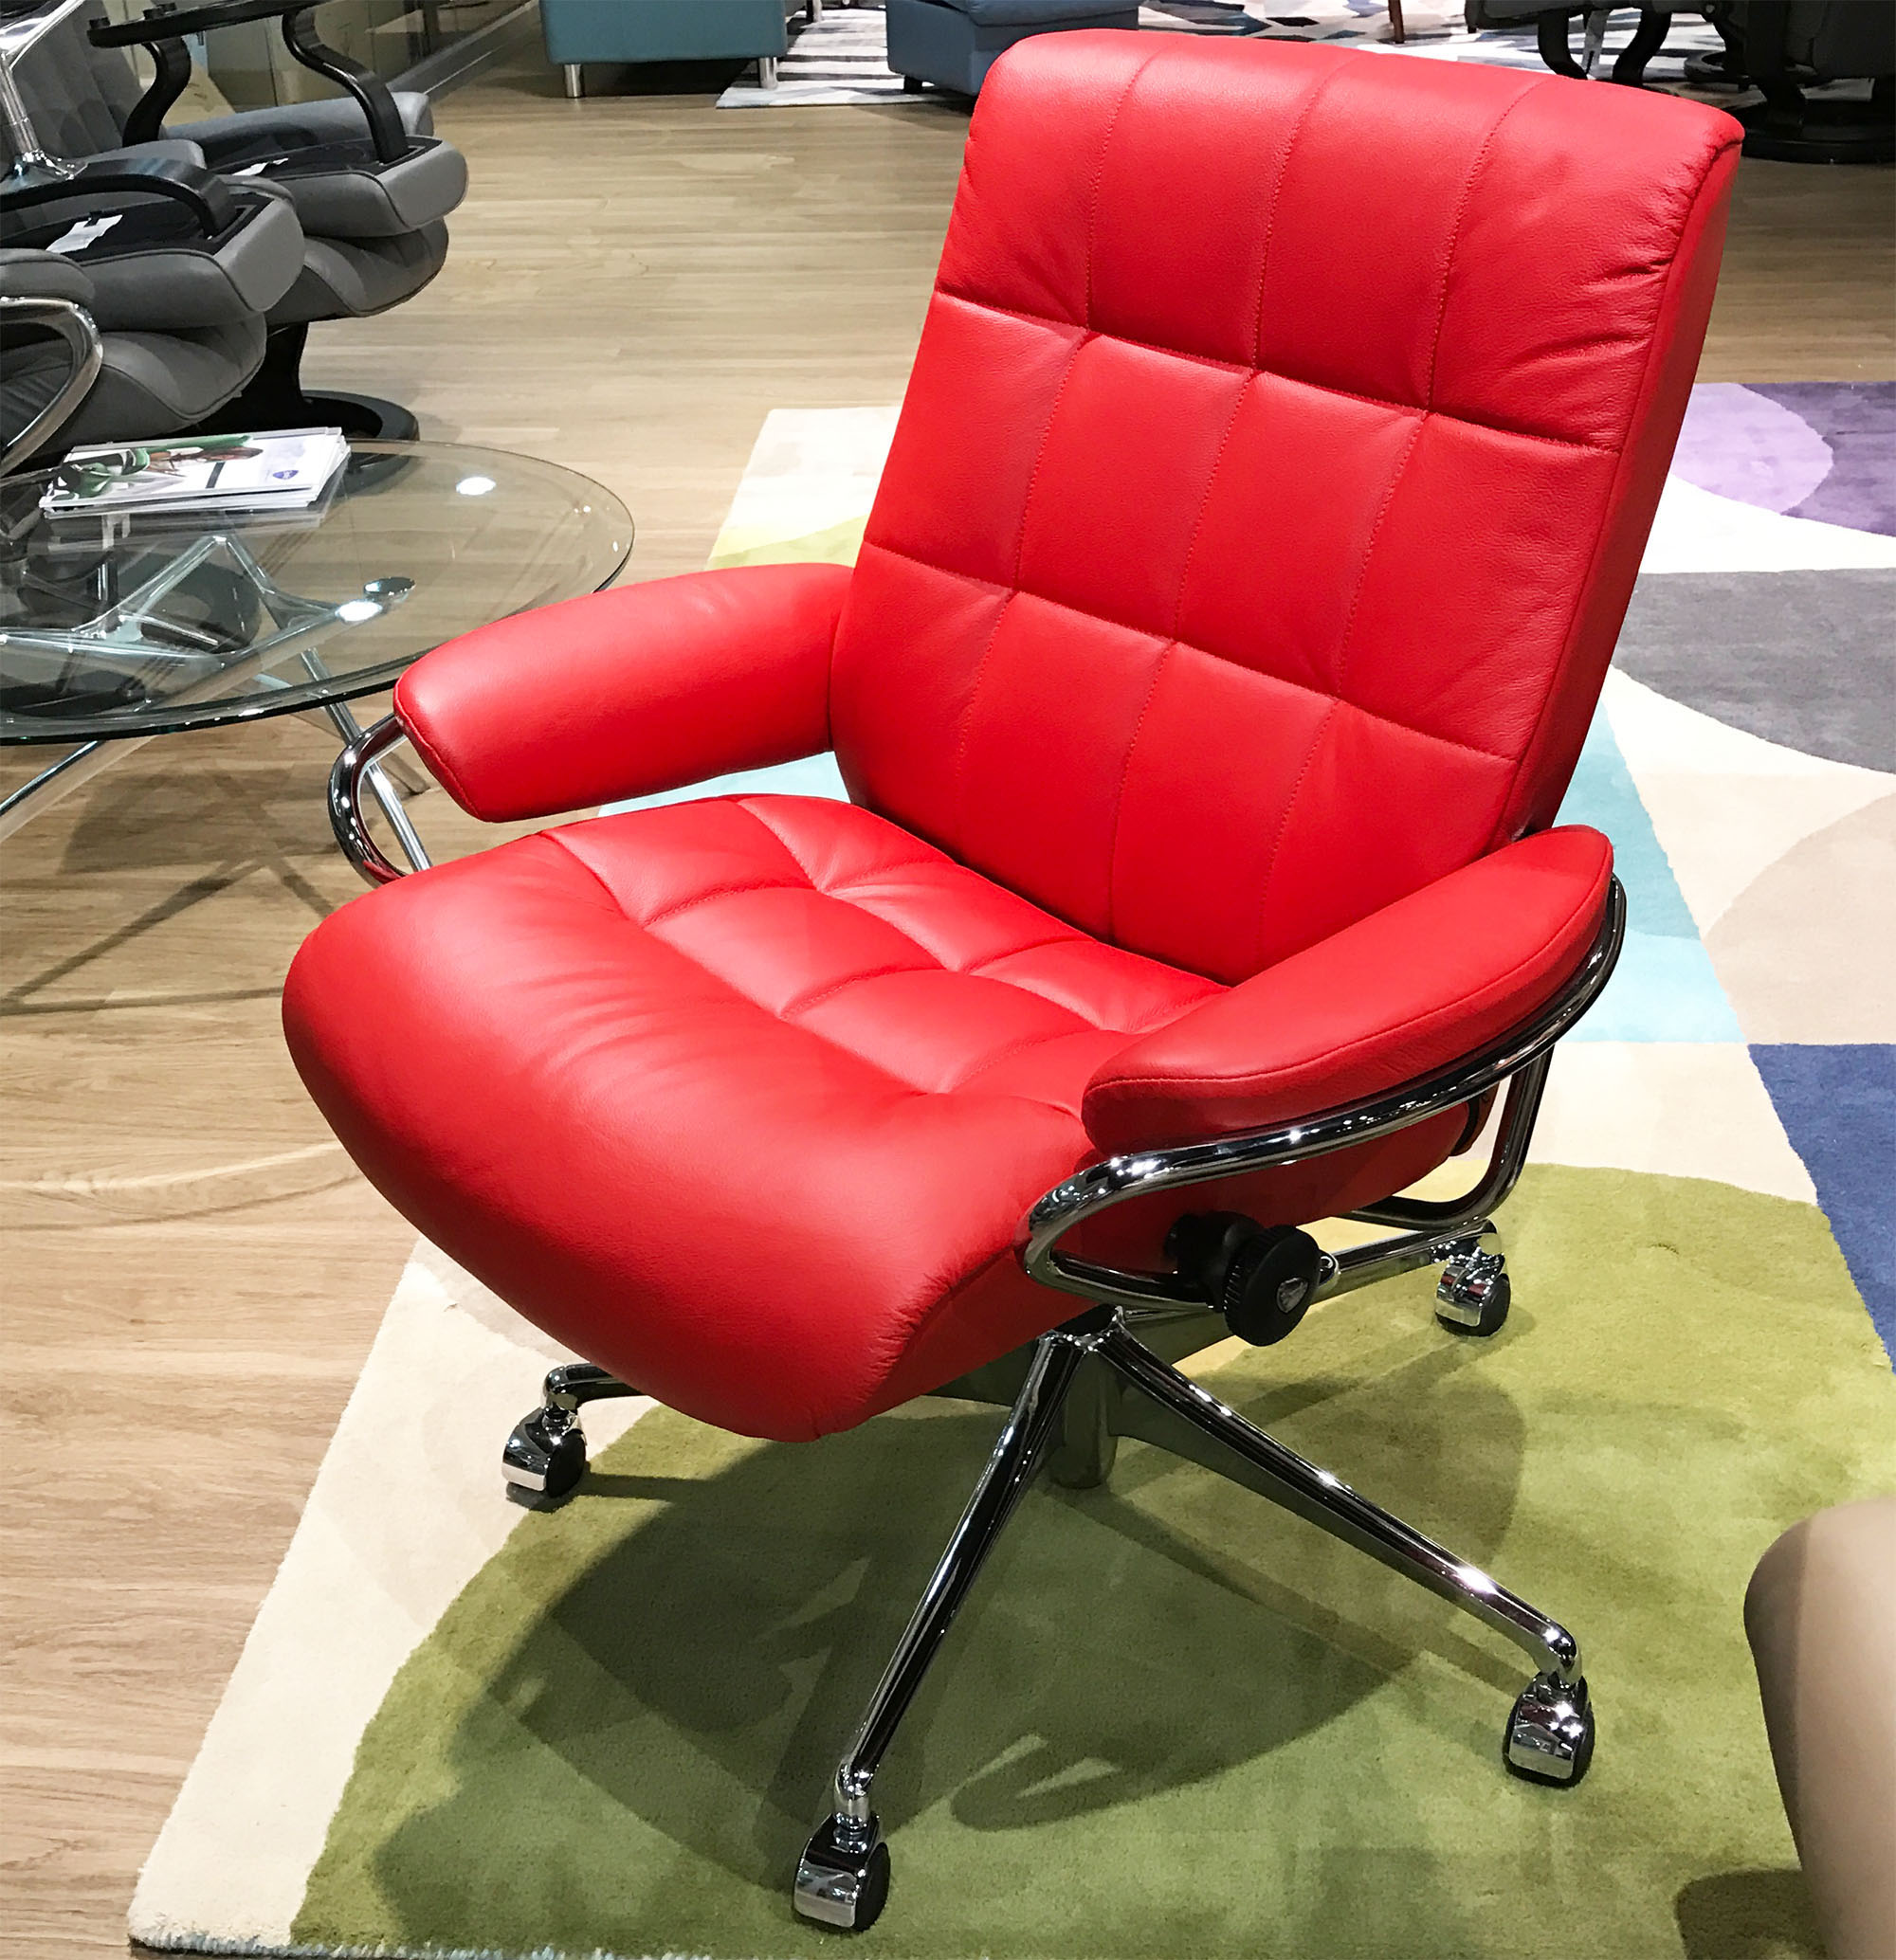 red recliner chairs makeup vanity chair with wheels stressless london low back leather in paloma tomato